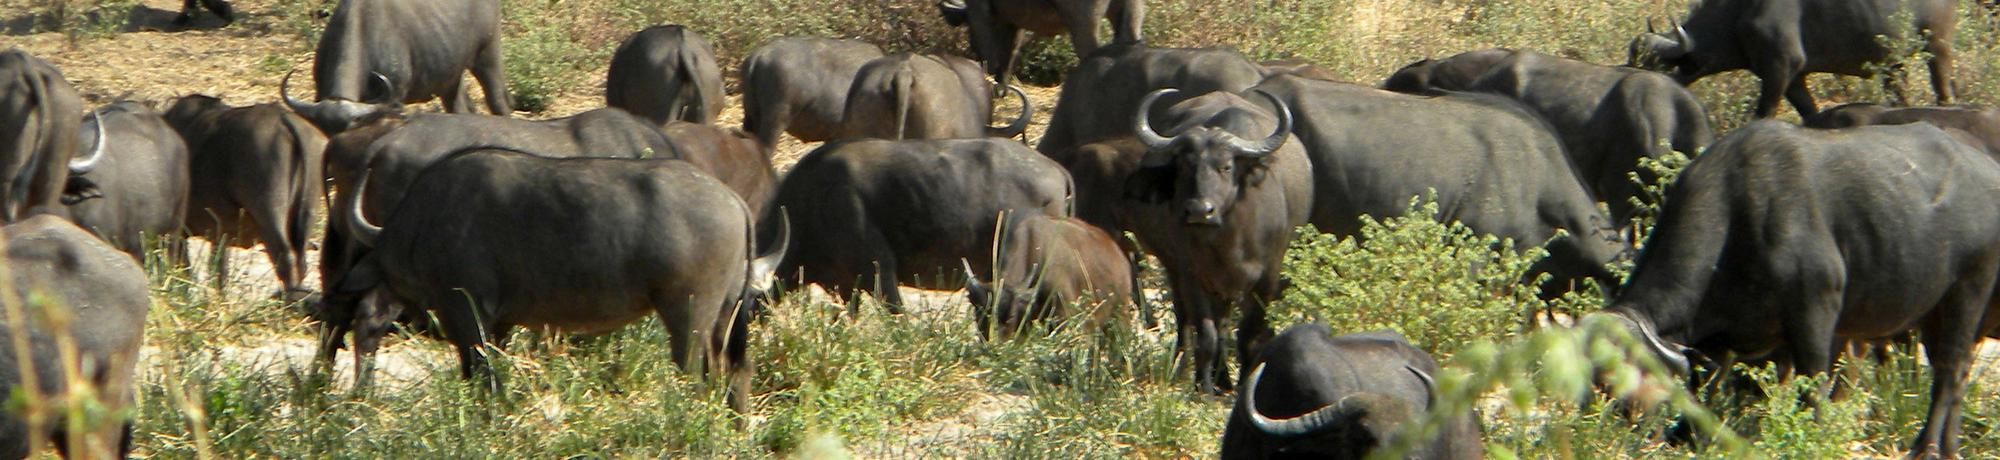 Ruaha water buffalo herd